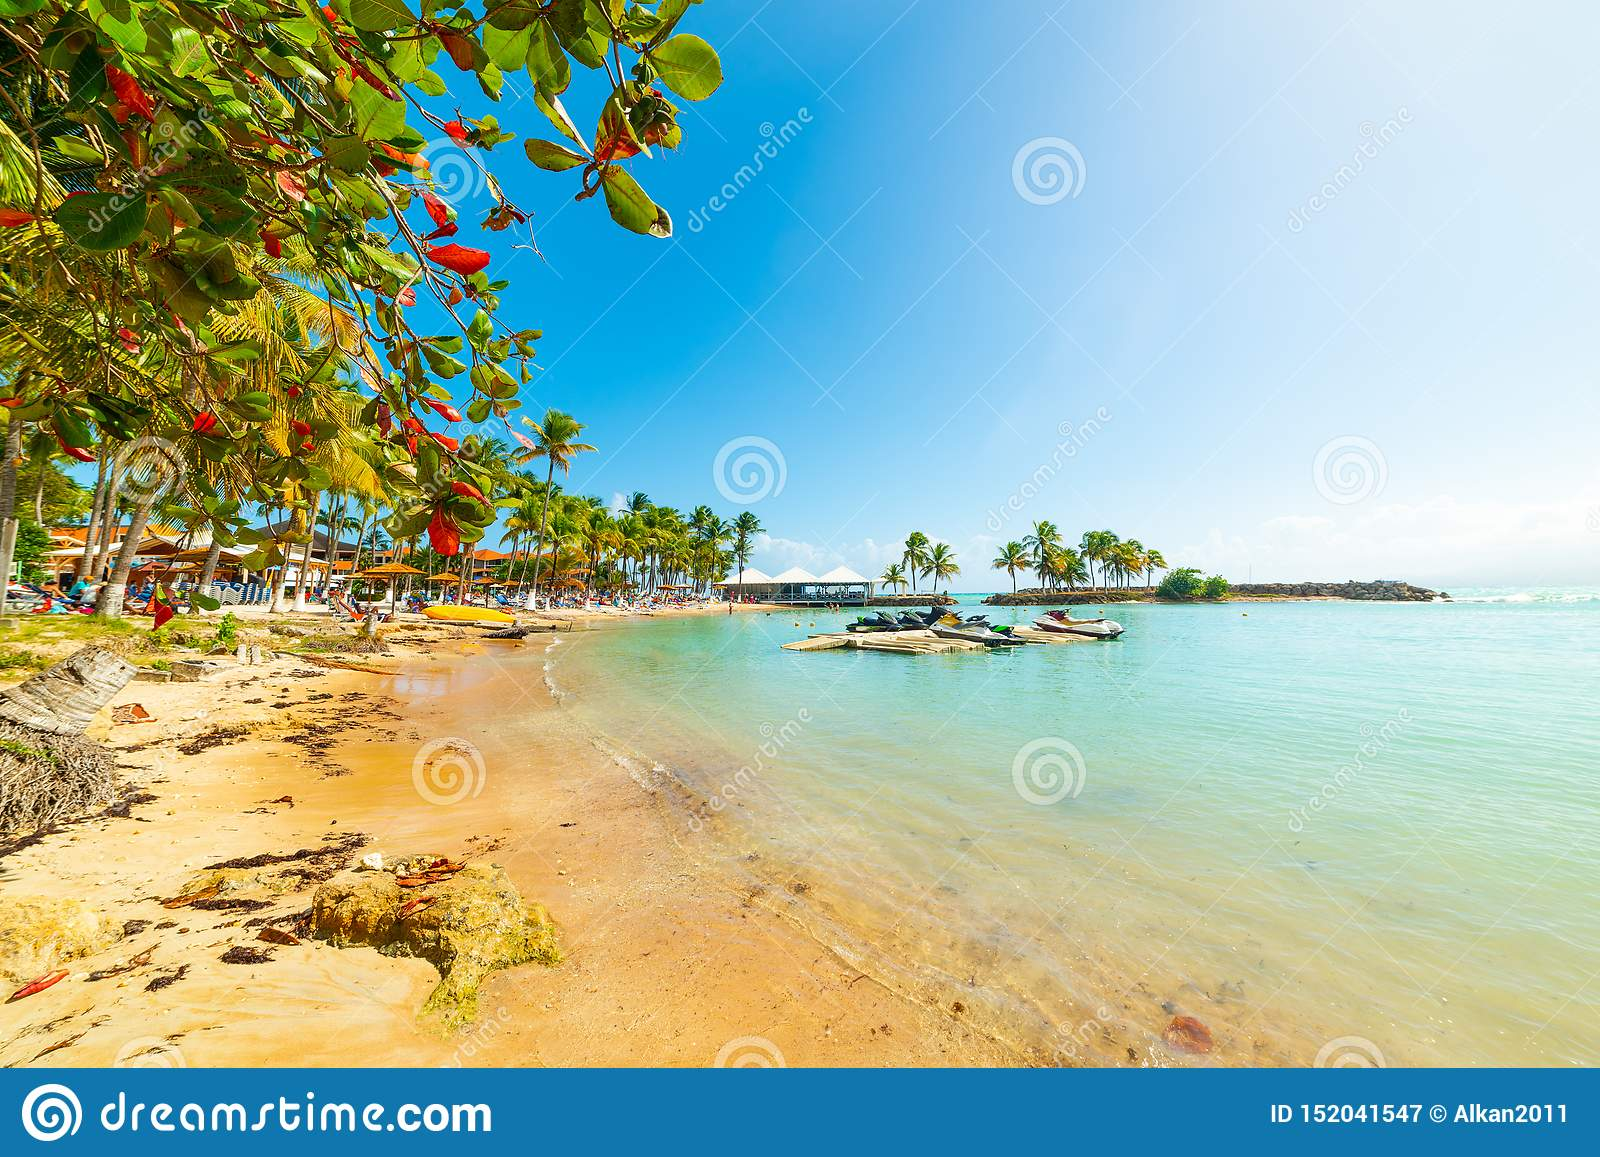 Colorful Shore In Bas Du Fort Beach In Guadeloupe Stock Image Image Of Sand Island 152041547